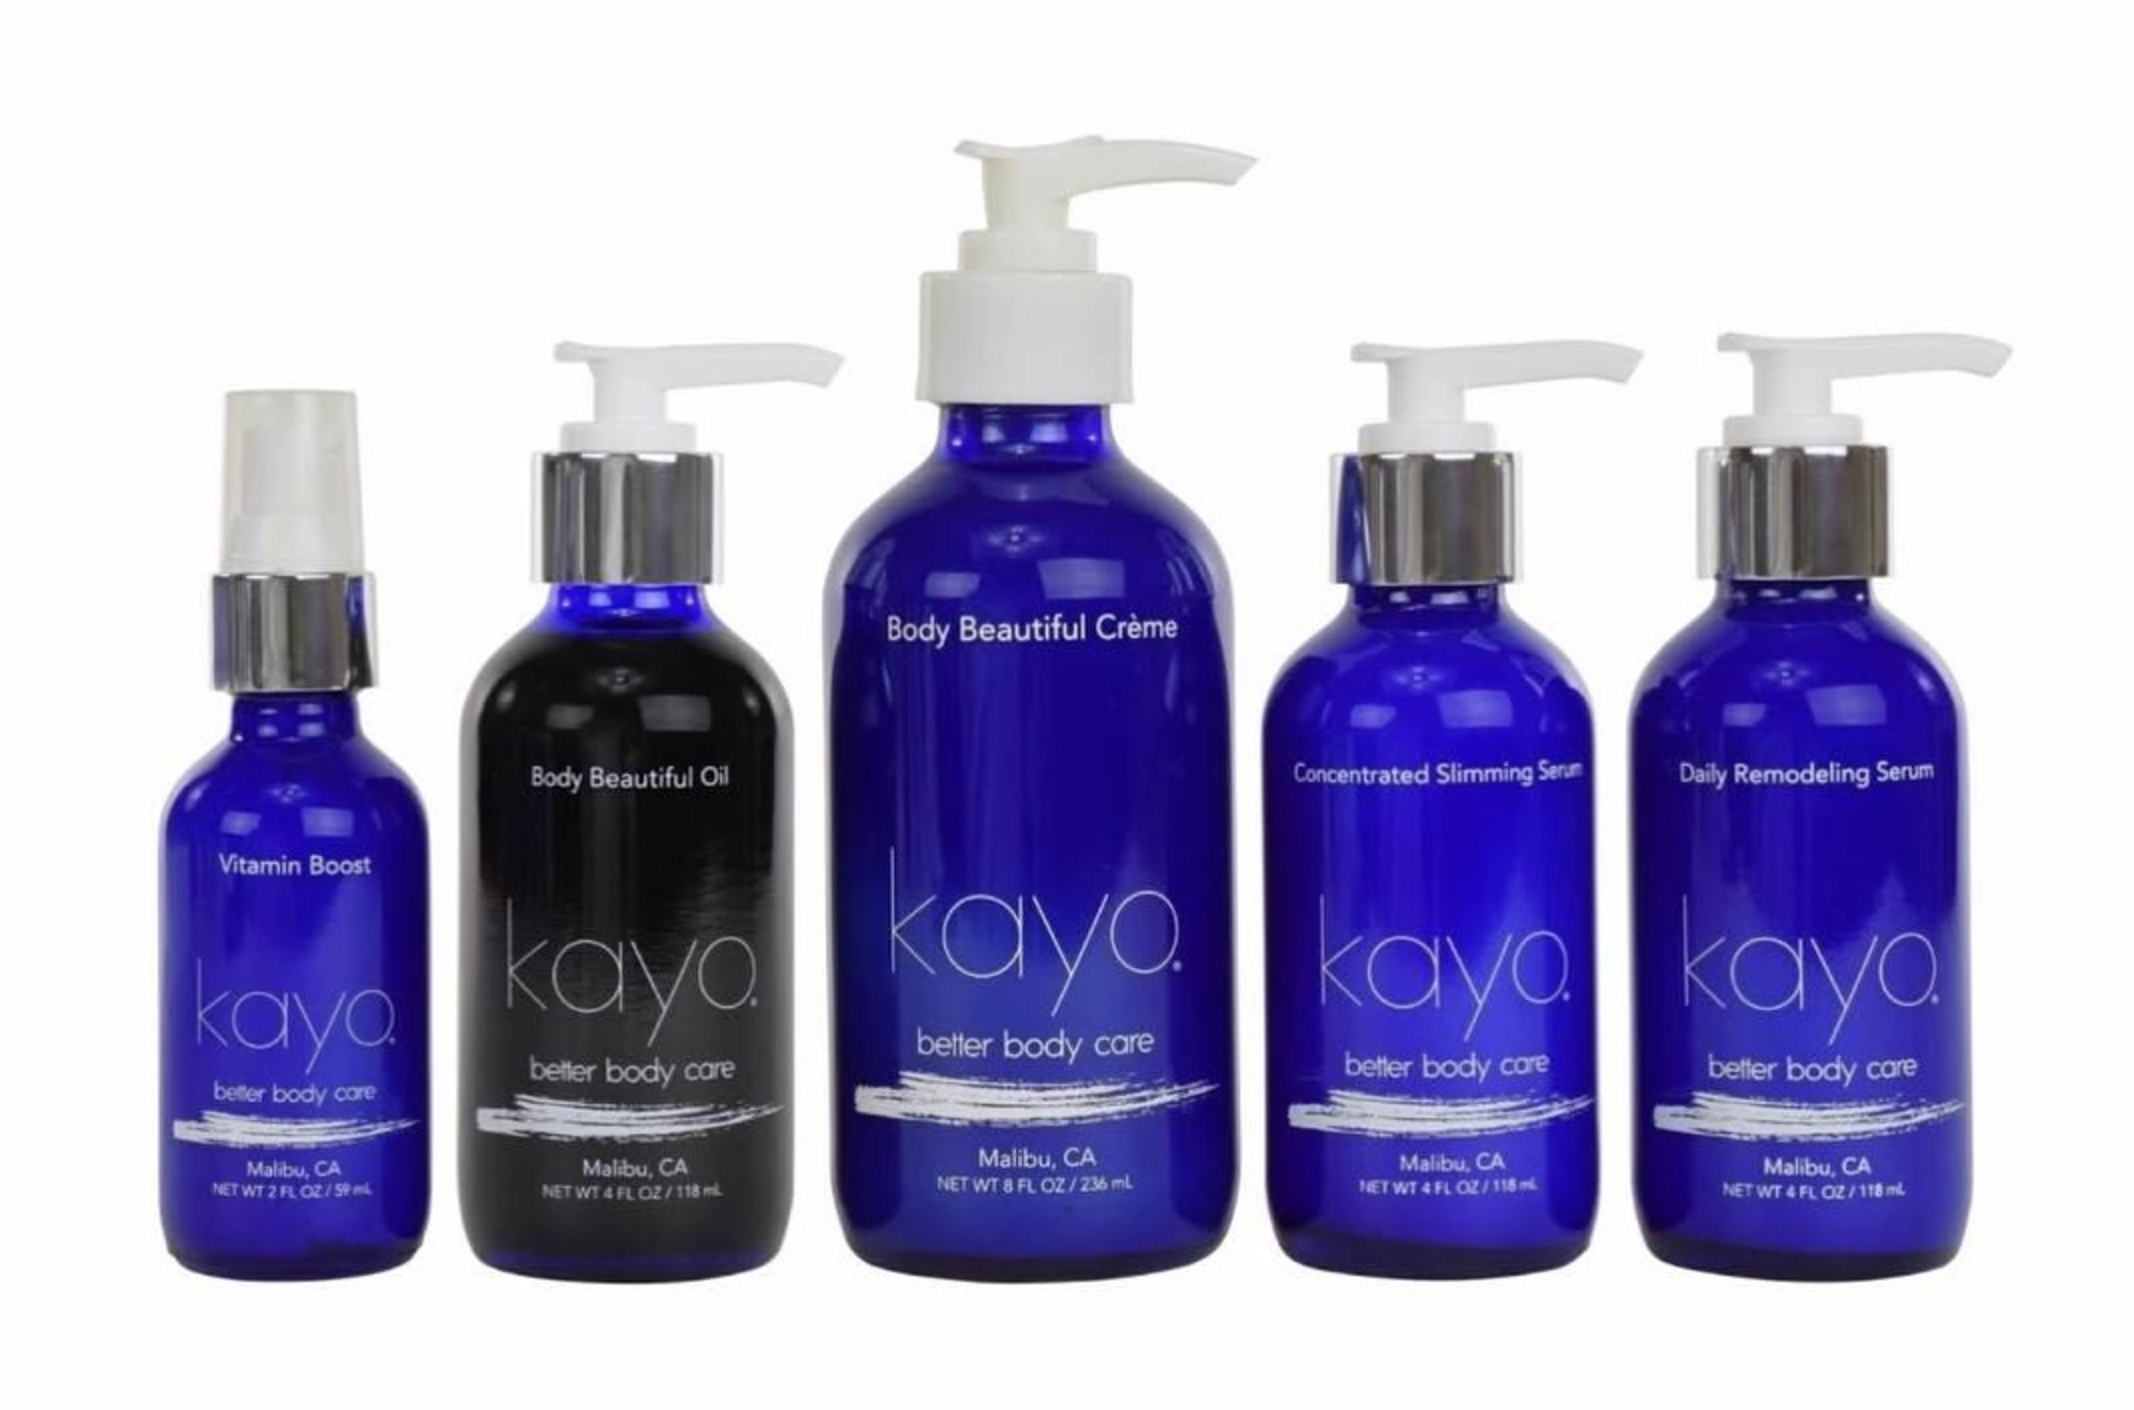 Kayo Better Body Care Collection